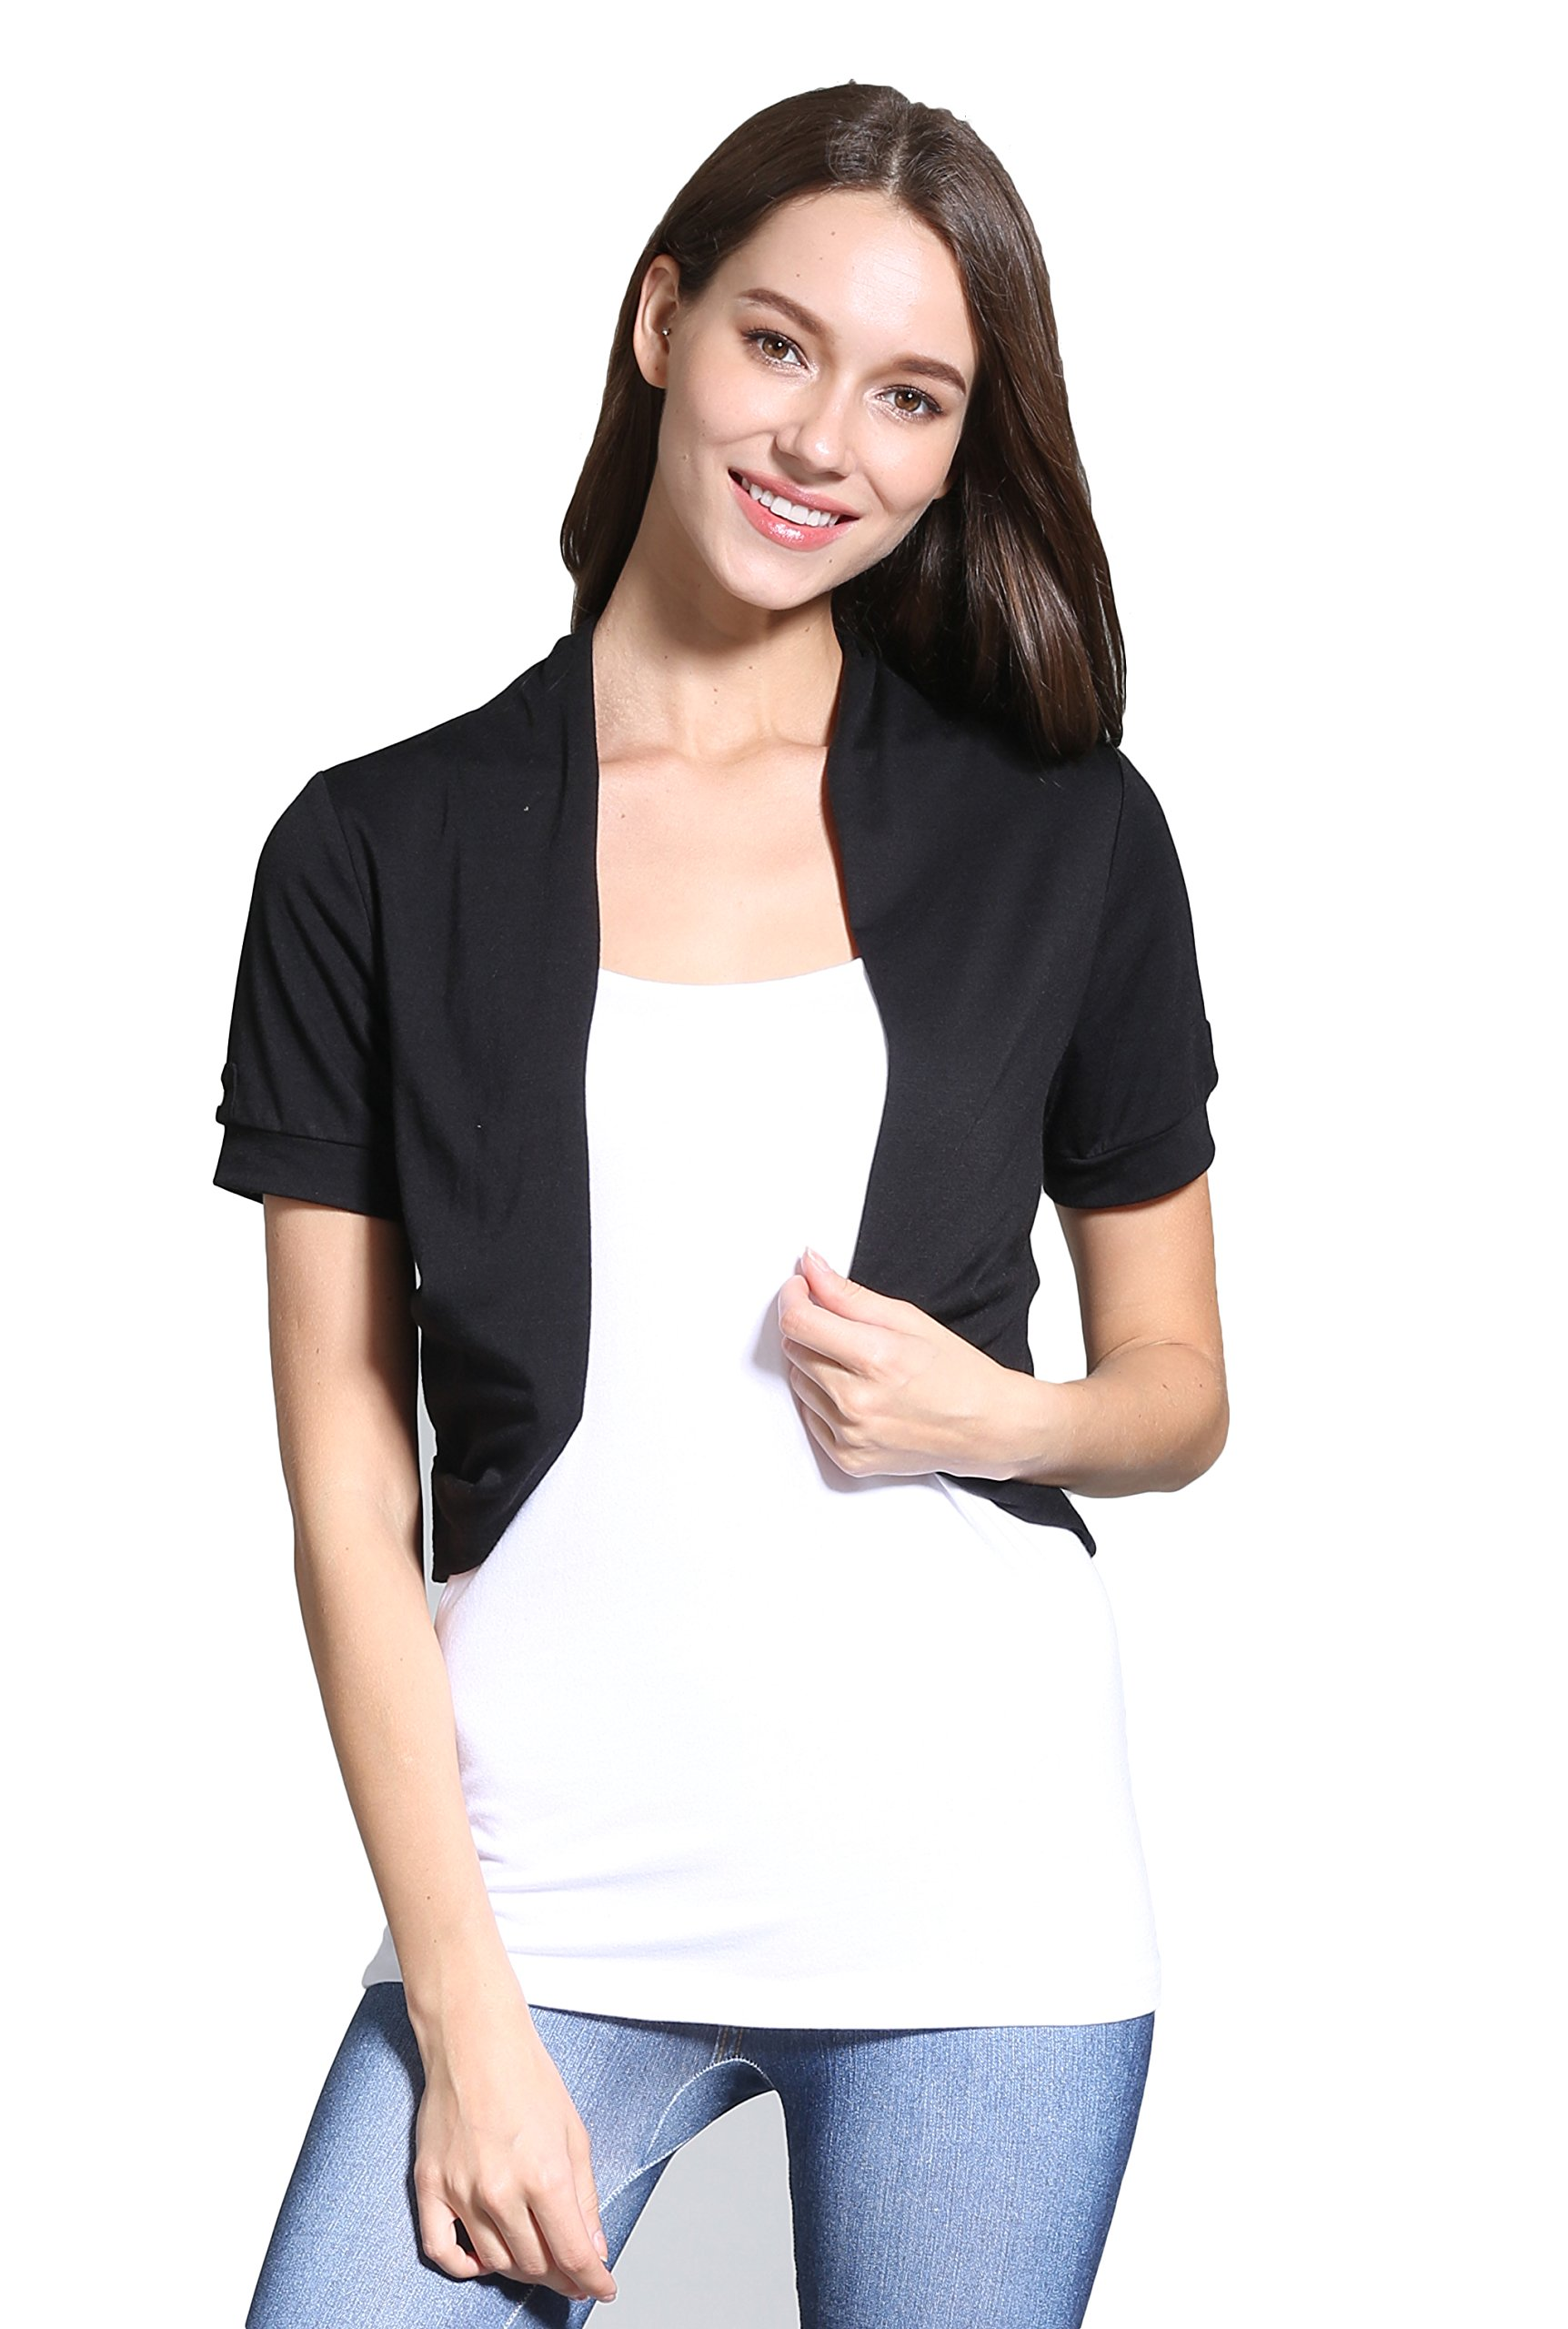 Sofishie Short Sleeve Bolero Shrug - Black - Medium